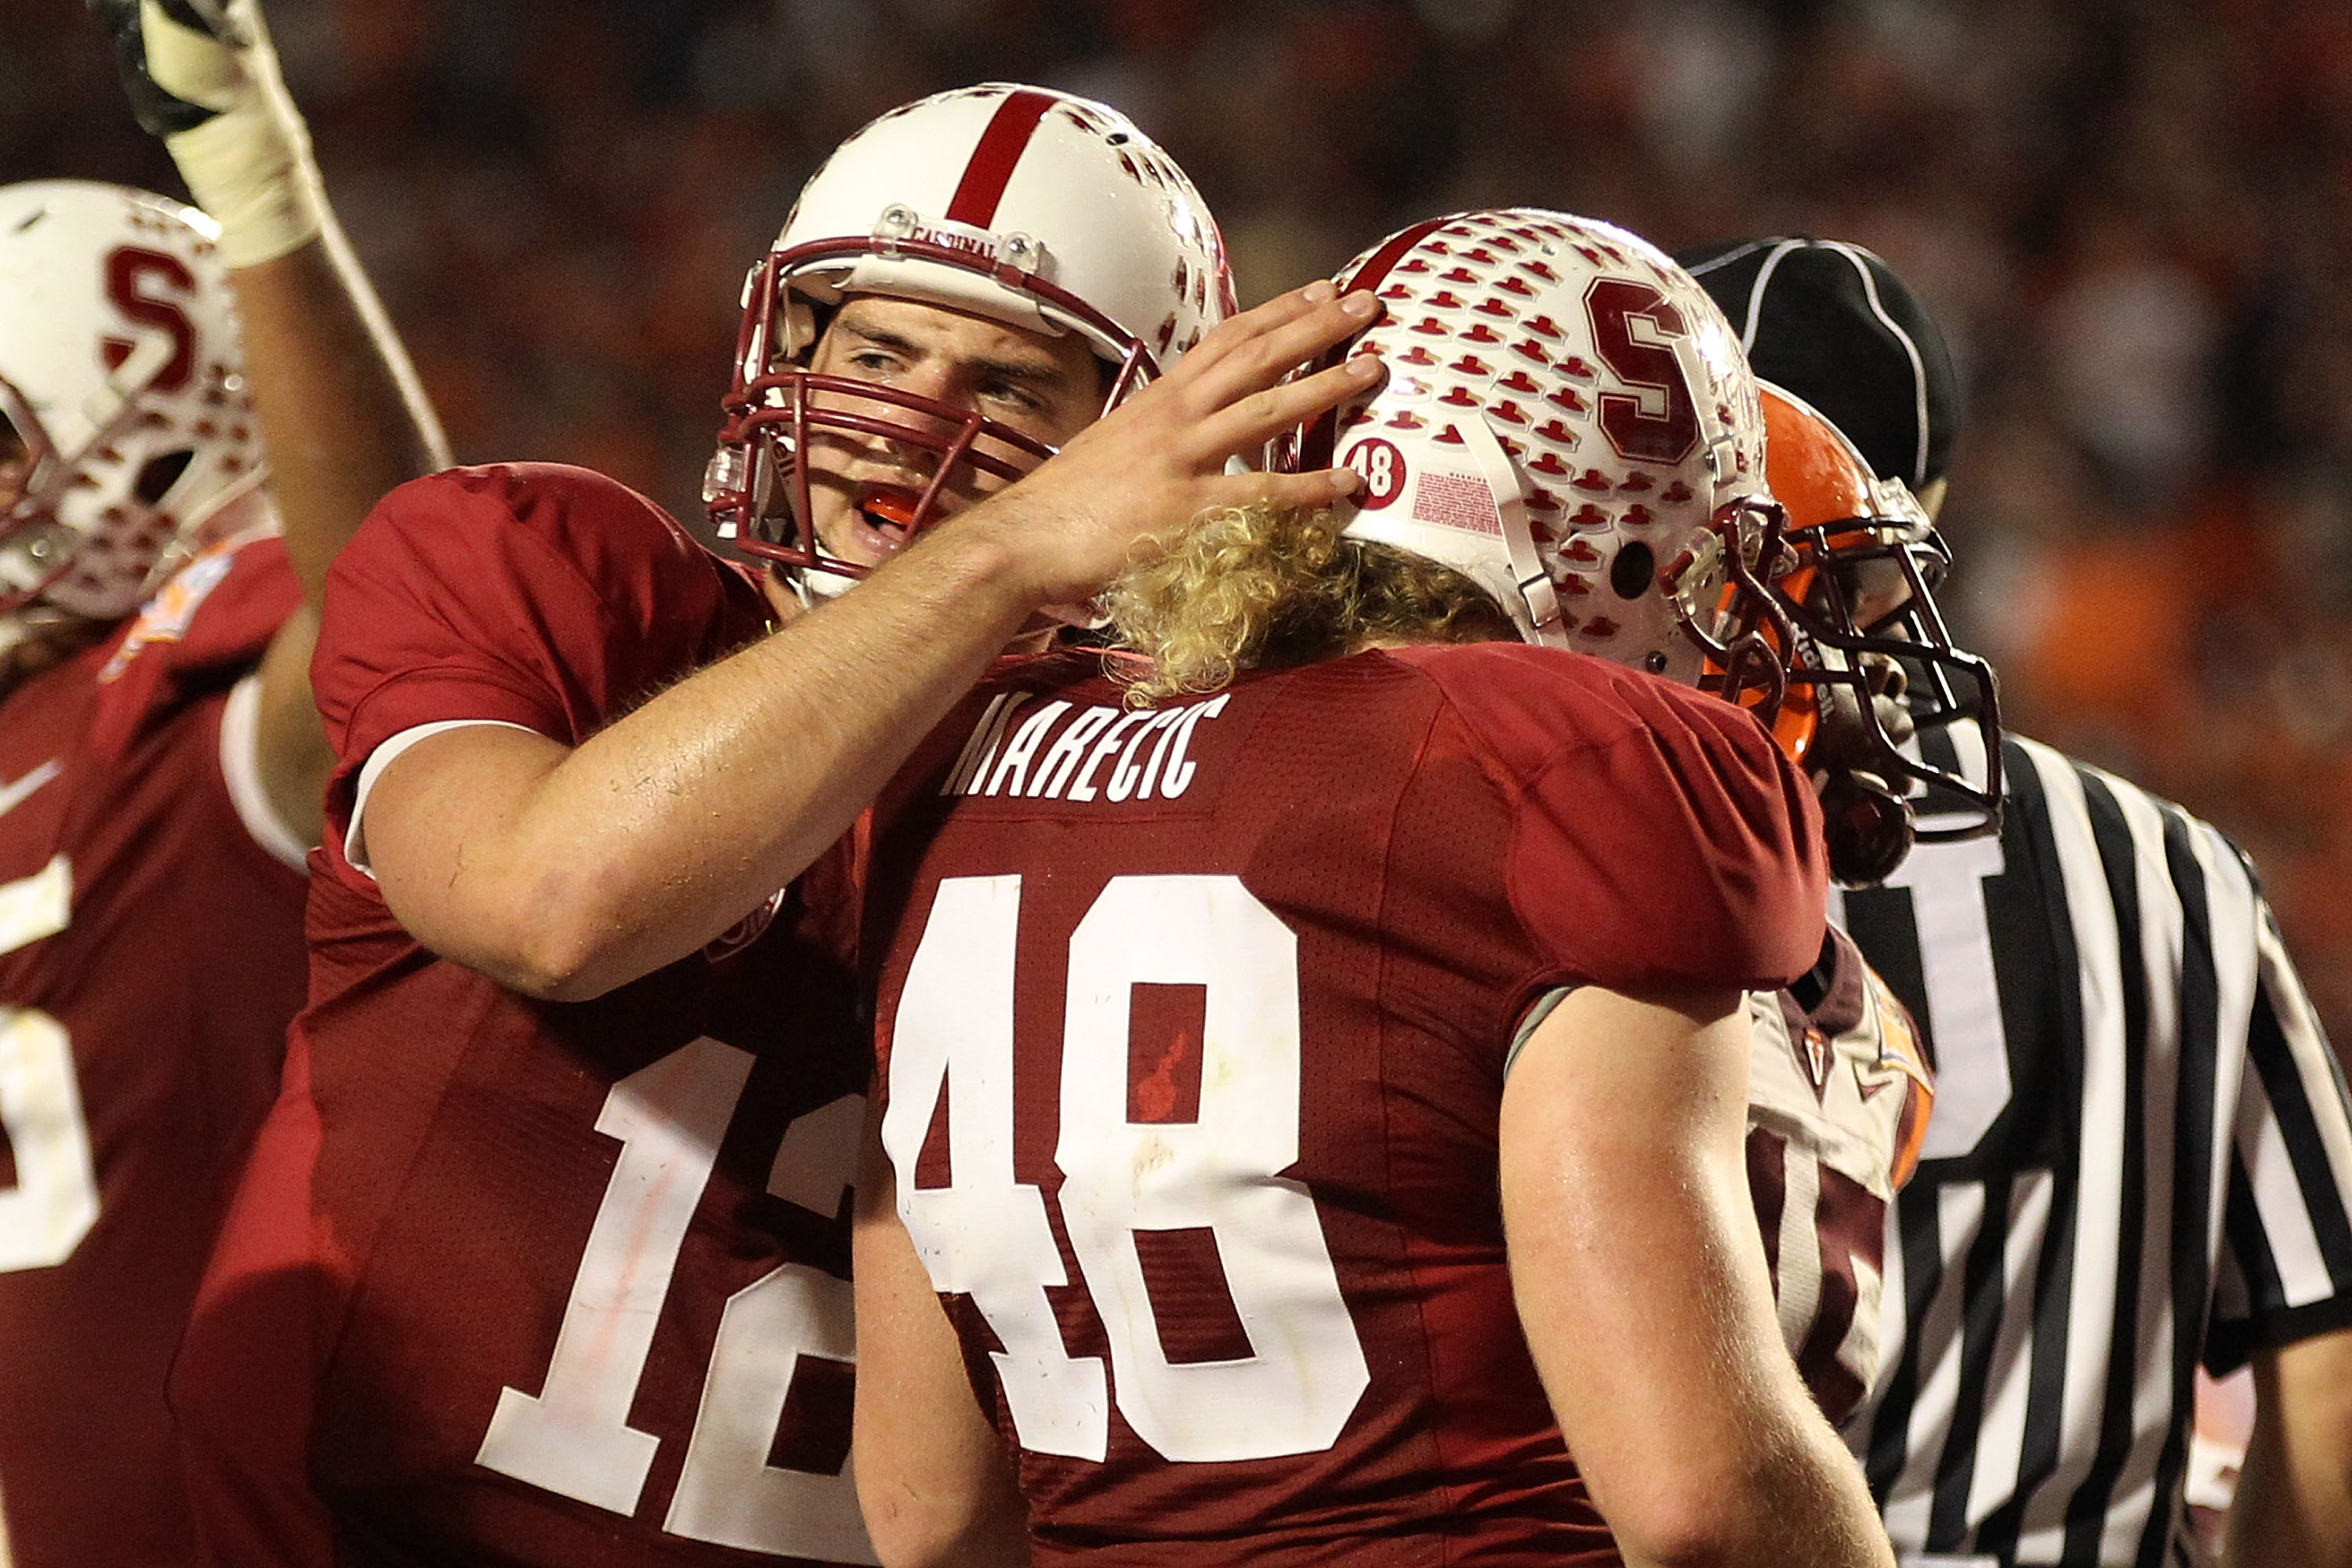 MIAMI, FL - JANUARY 03: (L-R) Andrew Luck #12 and Owen Marecic #48 of the Stanford Cardinal celebrate after Marecic scored a 1-yard rushing touchdown in the third quarter against the Virginia Tech Hokies during the 2011 Discover Orange Bowl at Sun Life St